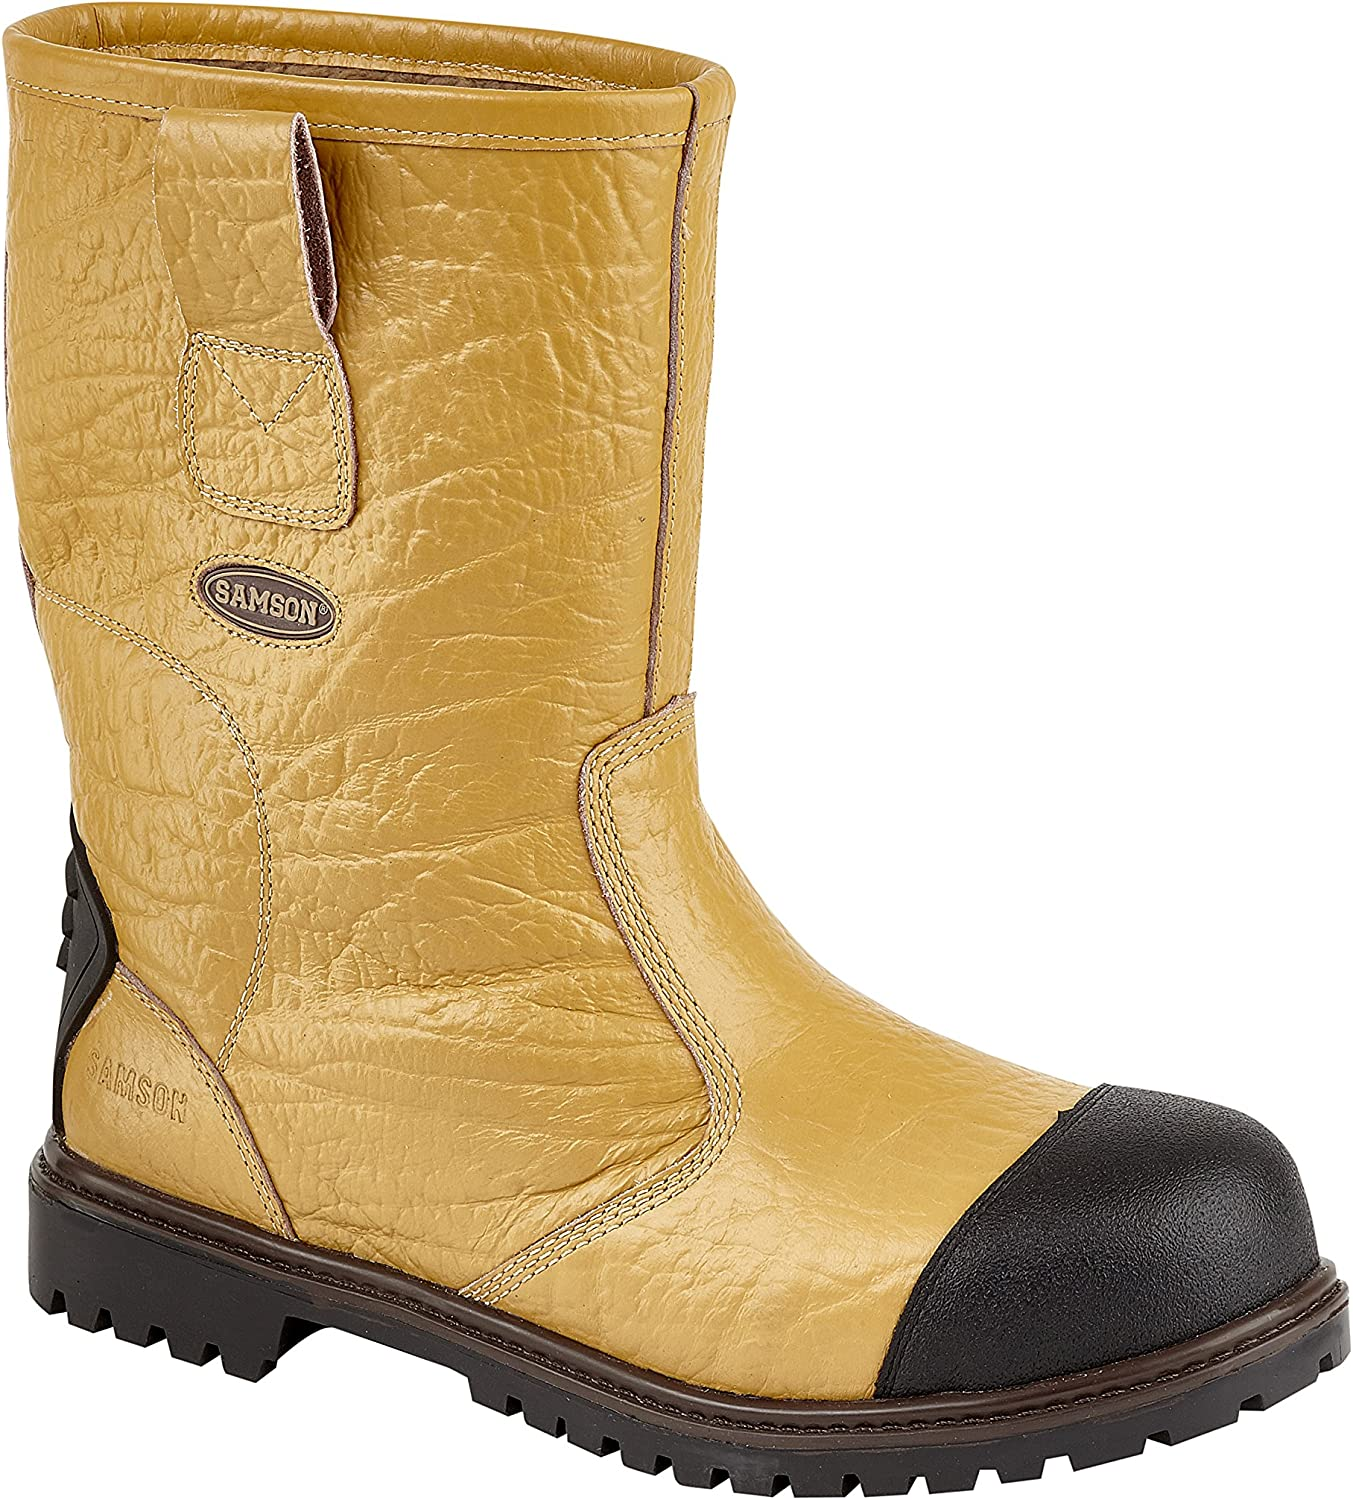 Samson 7025 S3 Tan Steel Toe Fur Lined Bump Cap Safety Rigger Boots Work Boot